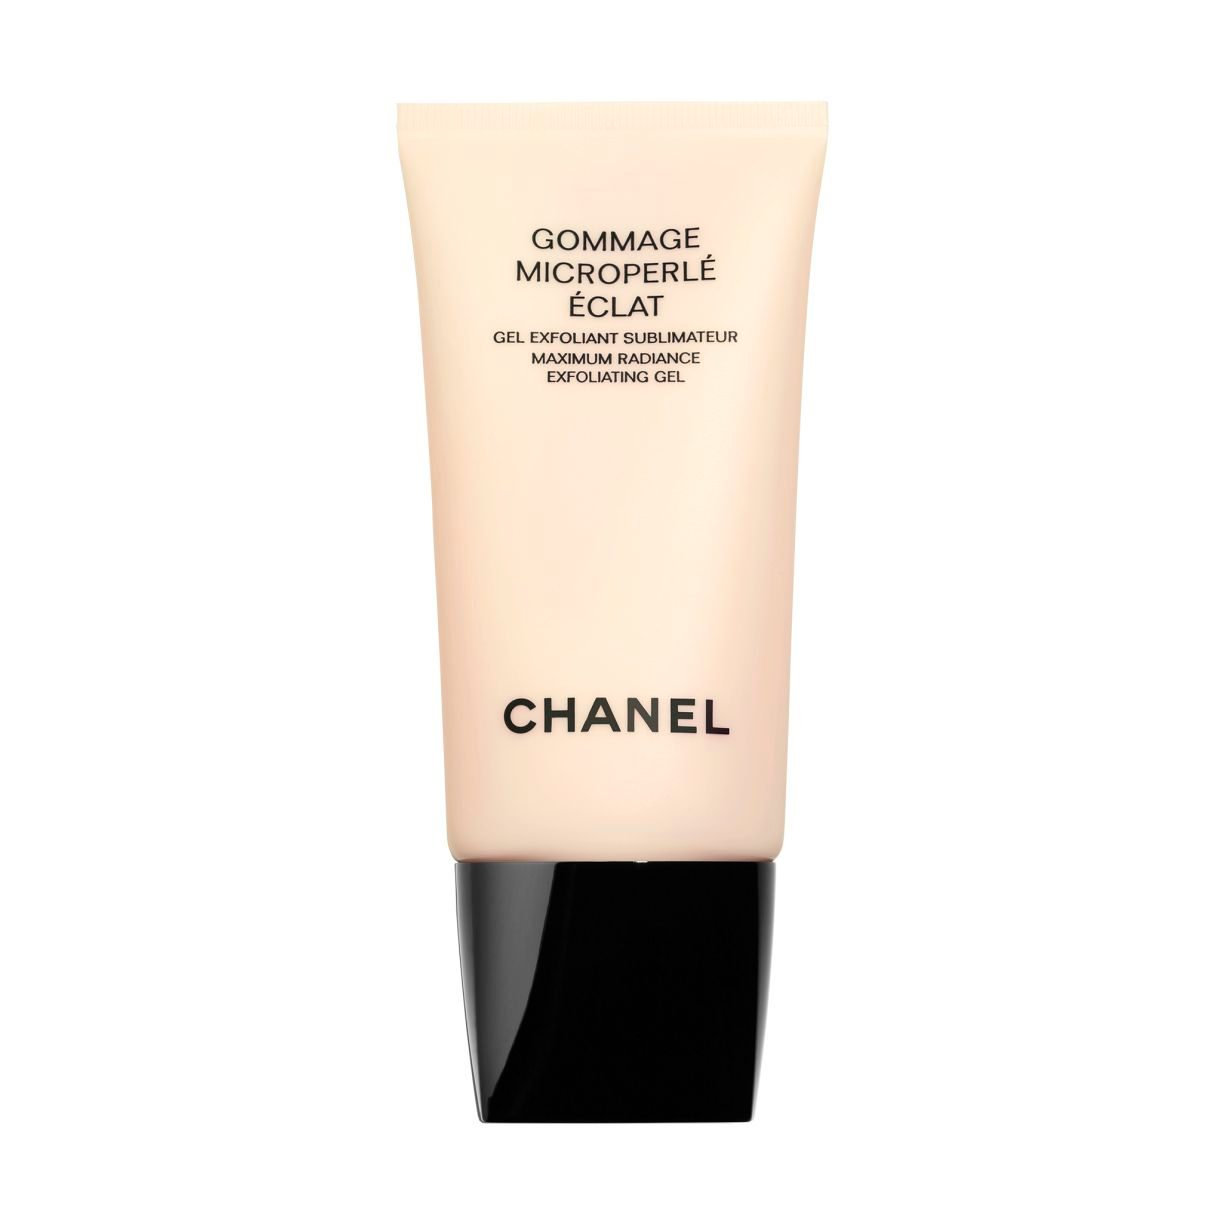 GOMMAGE MICROPERLÉ ÉCLAT MAXIMUM RADIANCE EXFOLIATING GEL TUBE 75ML